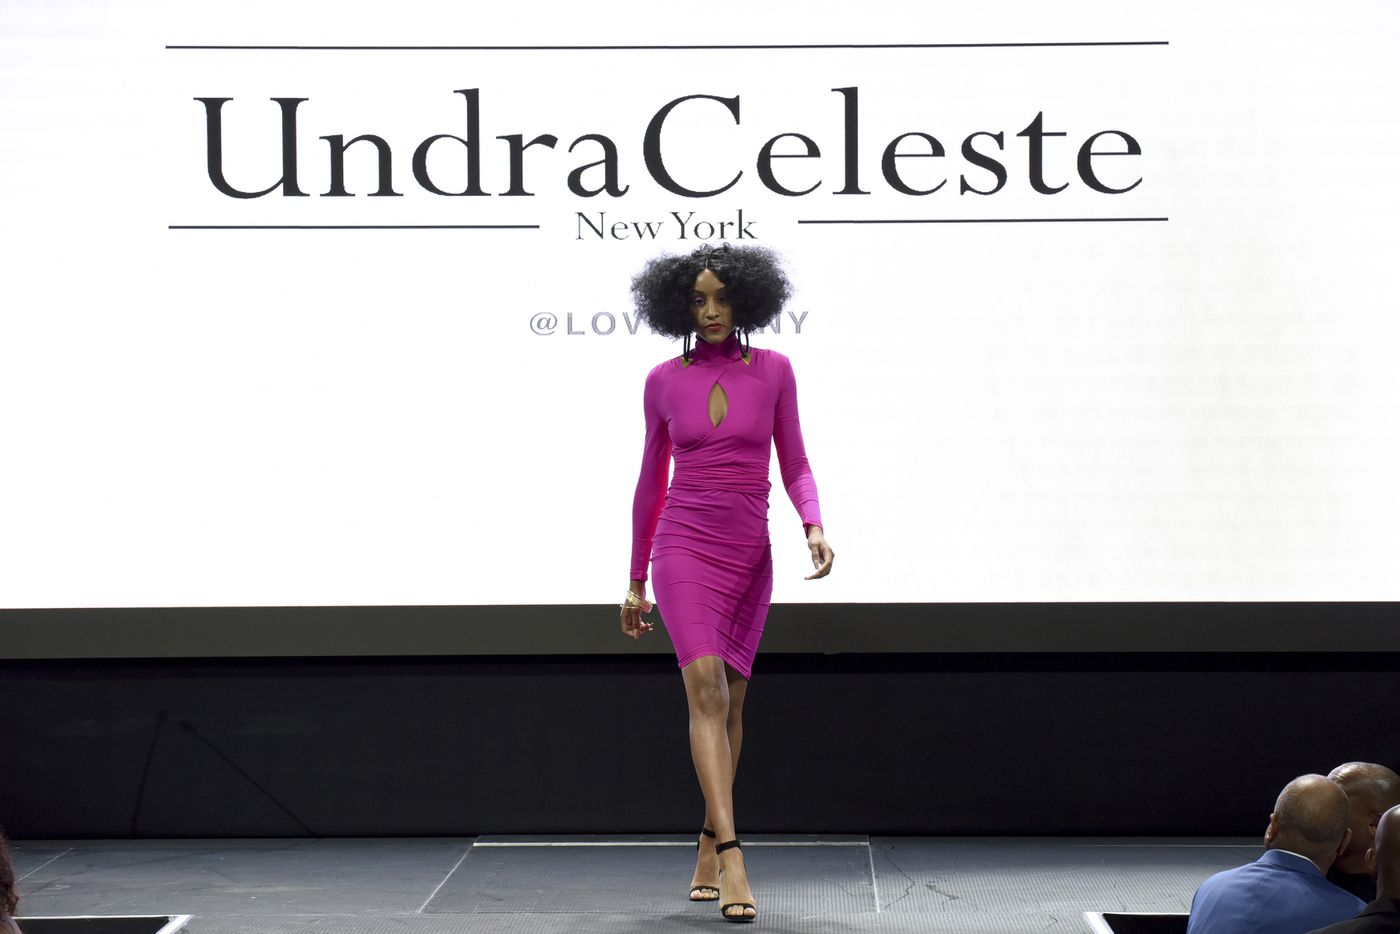 b9d47d48a75 The Undra Celeste collection is modeled at the Harlem Fashion Row show and  awards ceremony before